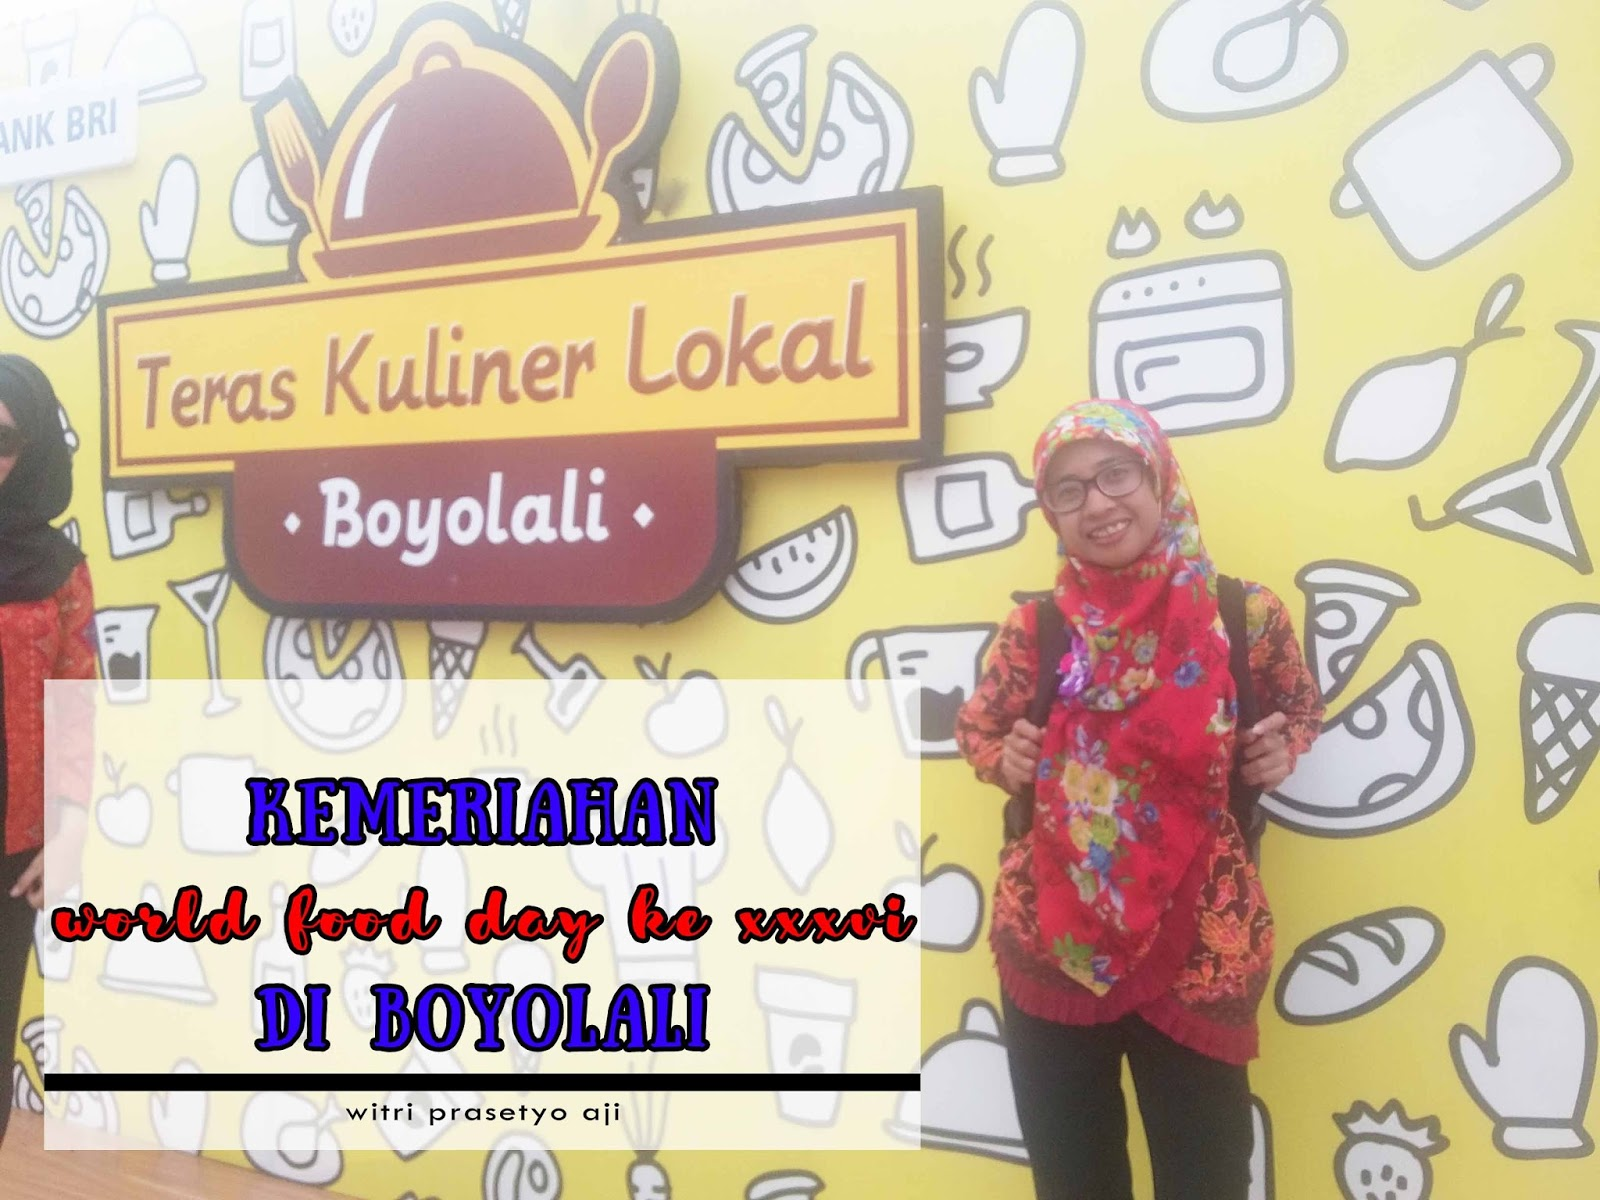 KEMERIAHAN WORLD FOOD DAY KE XXXVI di BOYOLALI